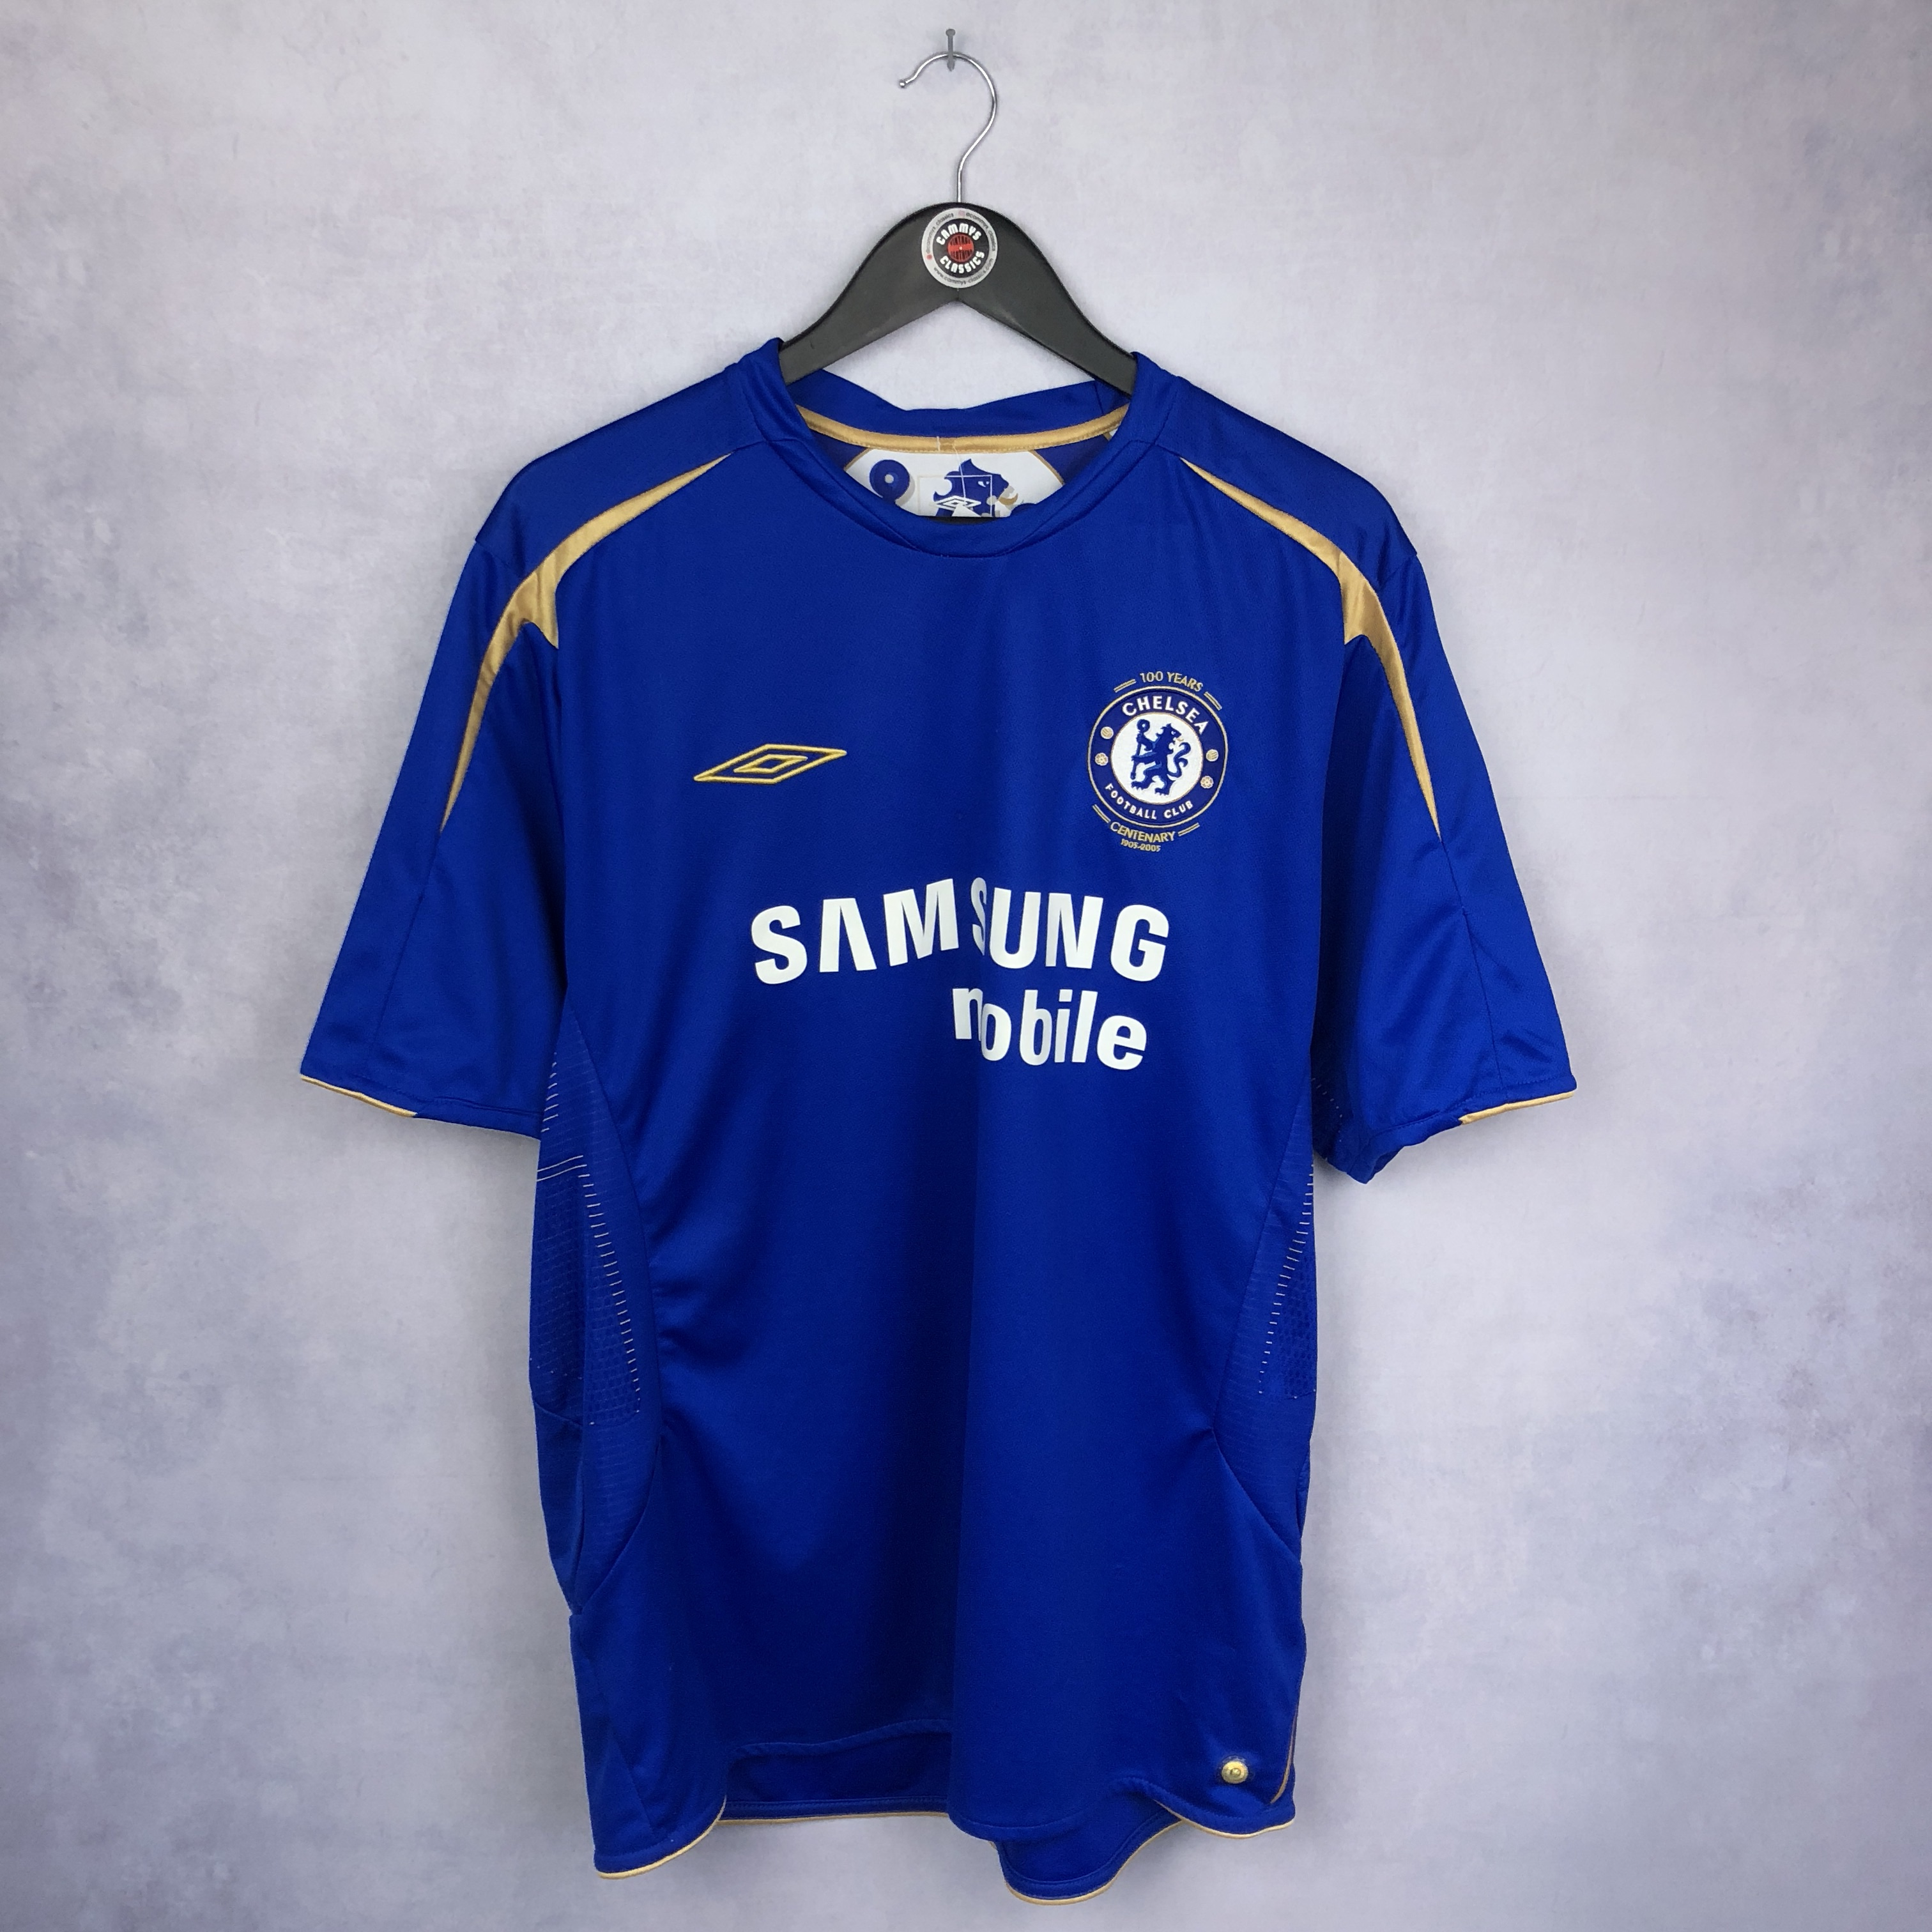 huge discount d53b6 4ad05 Umbro Chelsea FC 100 year anniversary Y2K 2005 kit ...